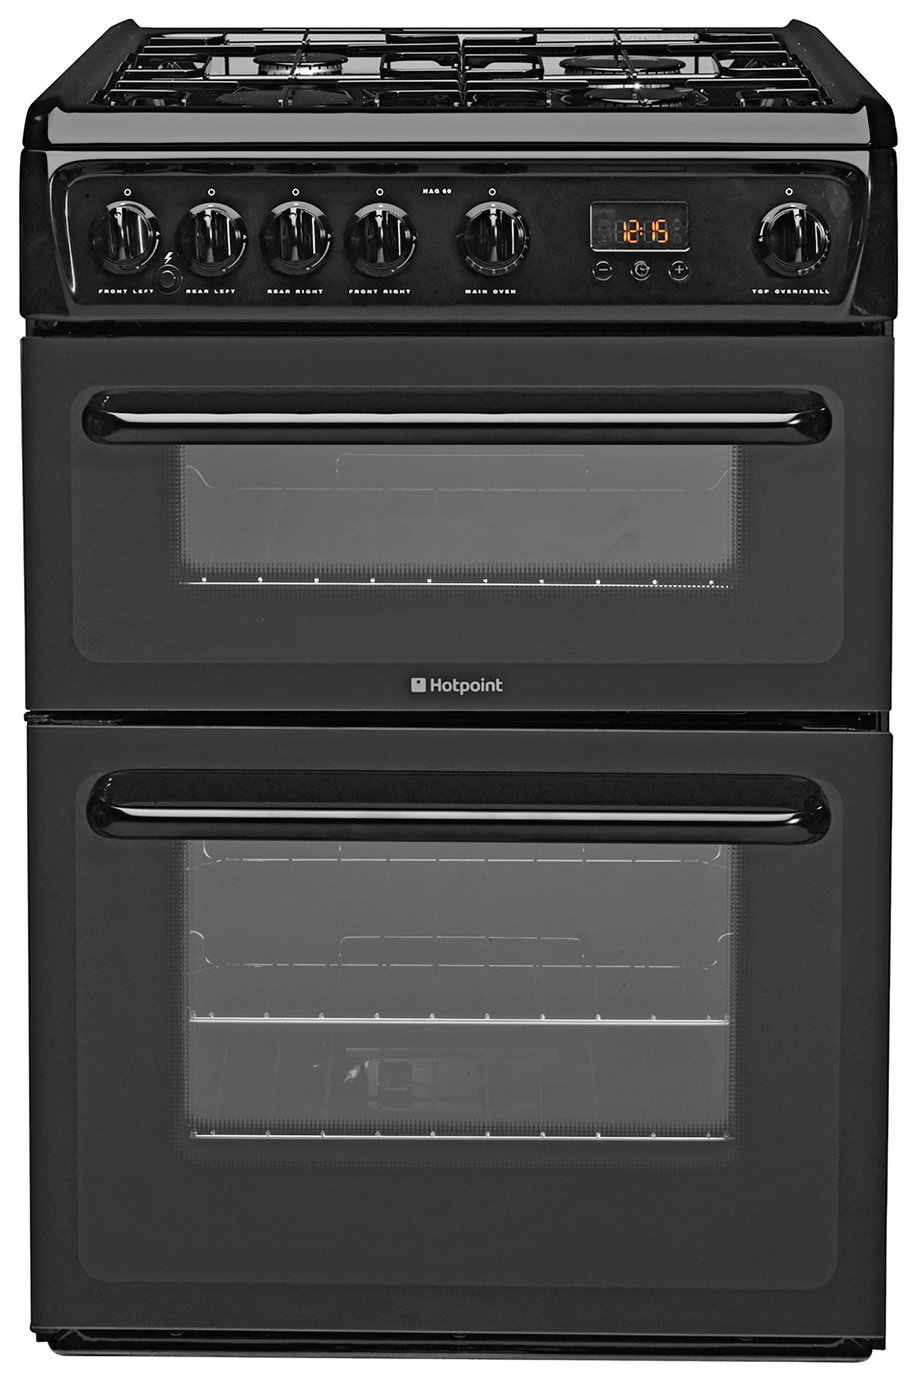 Hotpoint HAG60K 60cm Double Oven Gas Cooker - Black from Hotpoint